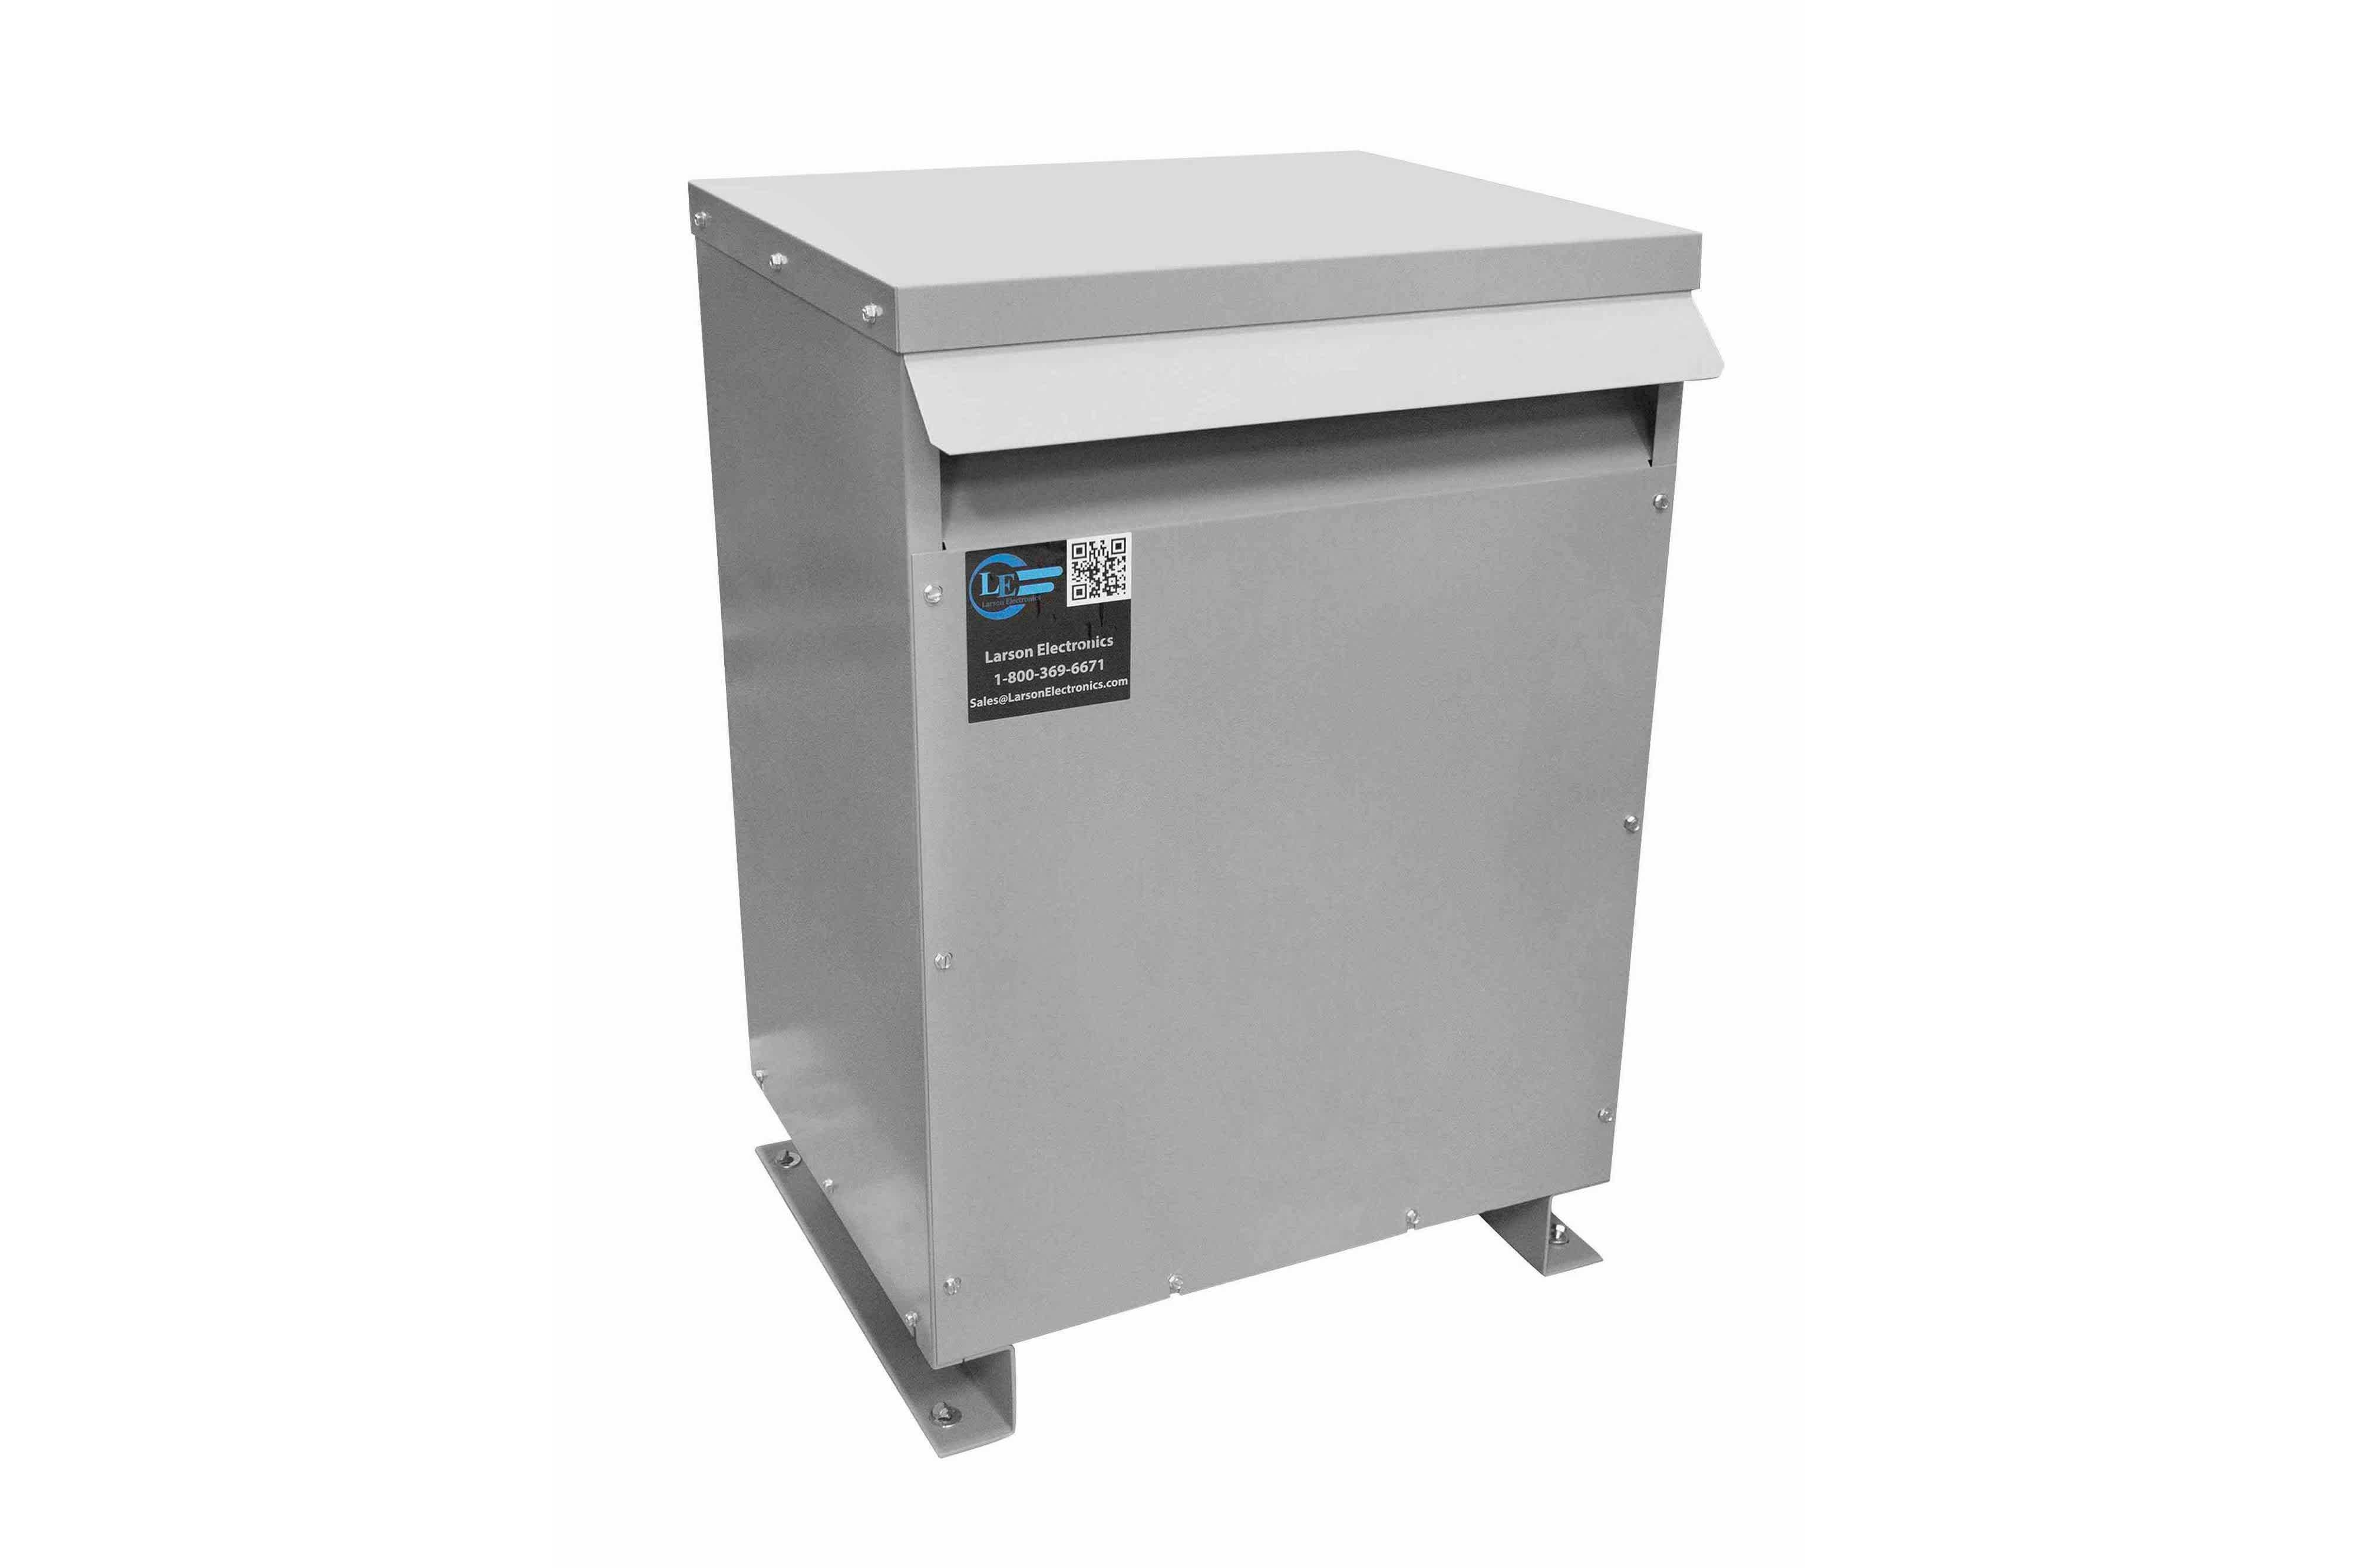 237.5 kVA 3PH Isolation Transformer, 480V Delta Primary, 415V Delta Secondary, N3R, Ventilated, 60 Hz